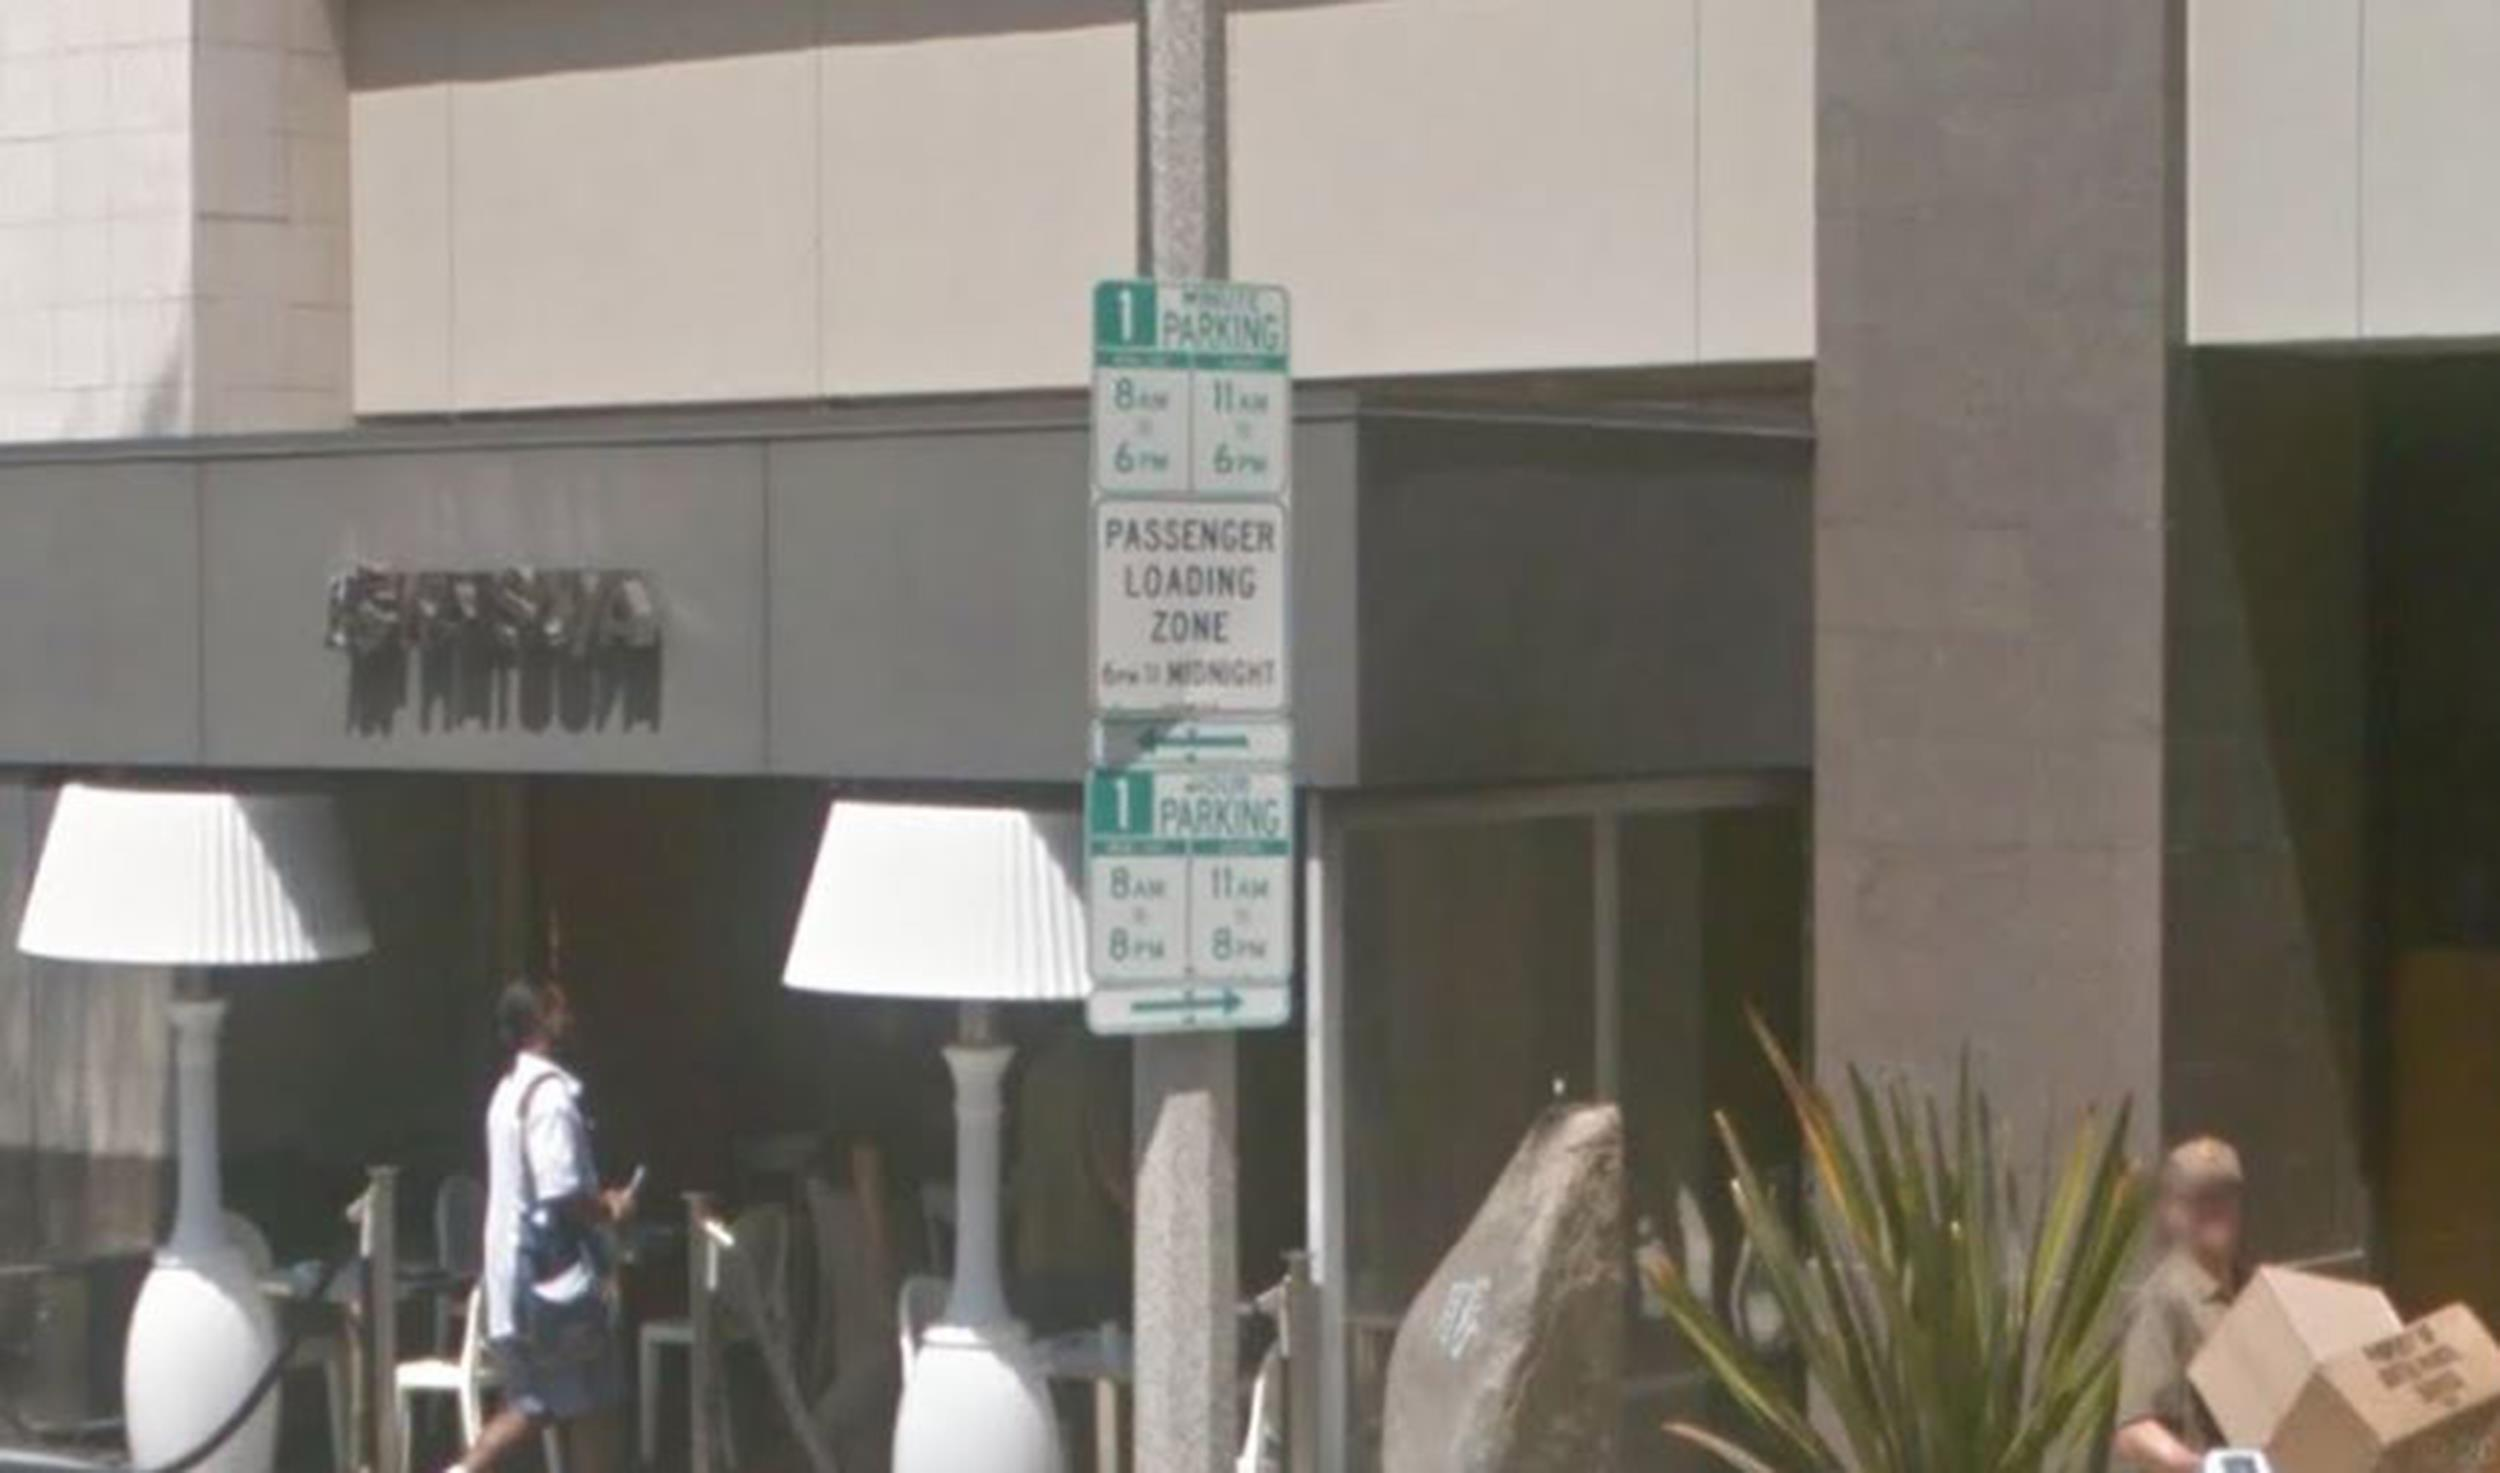 Bad Timing: Photo of 1-Minute Parking Sign Goes Viral - NBC News